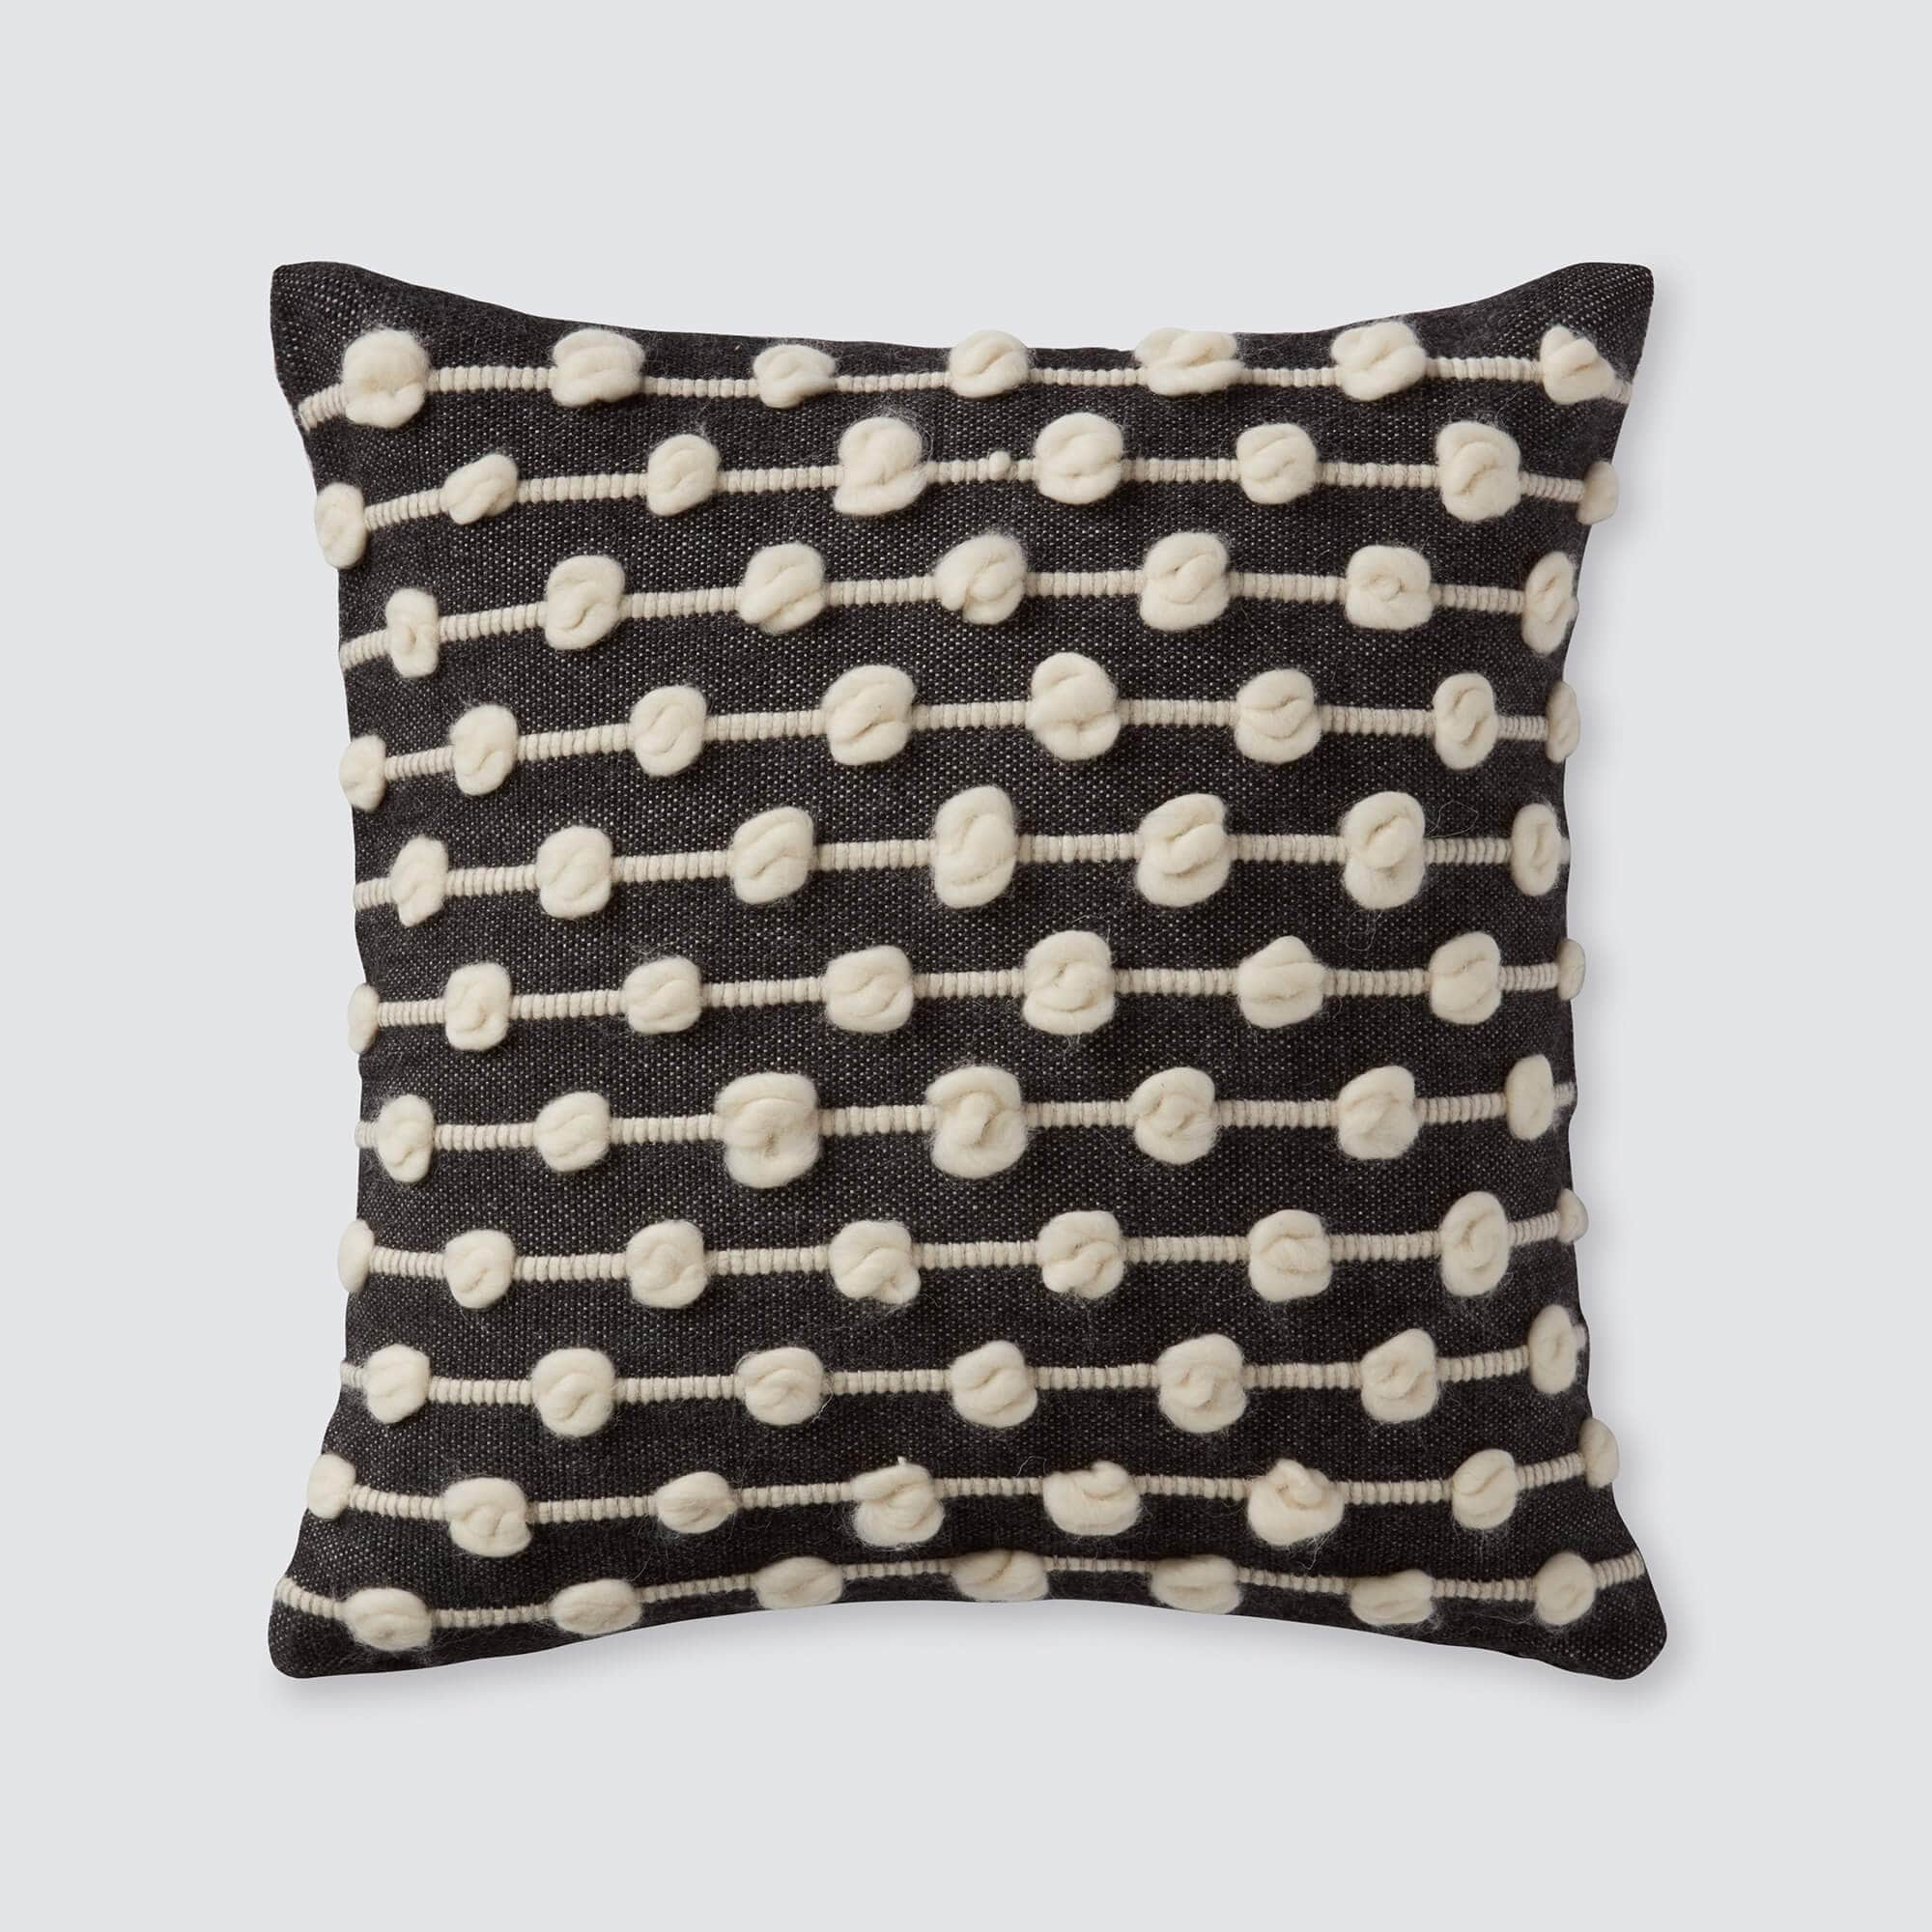 Modern Wool Throw Pillows Ethically Made In Peru The Citizenry